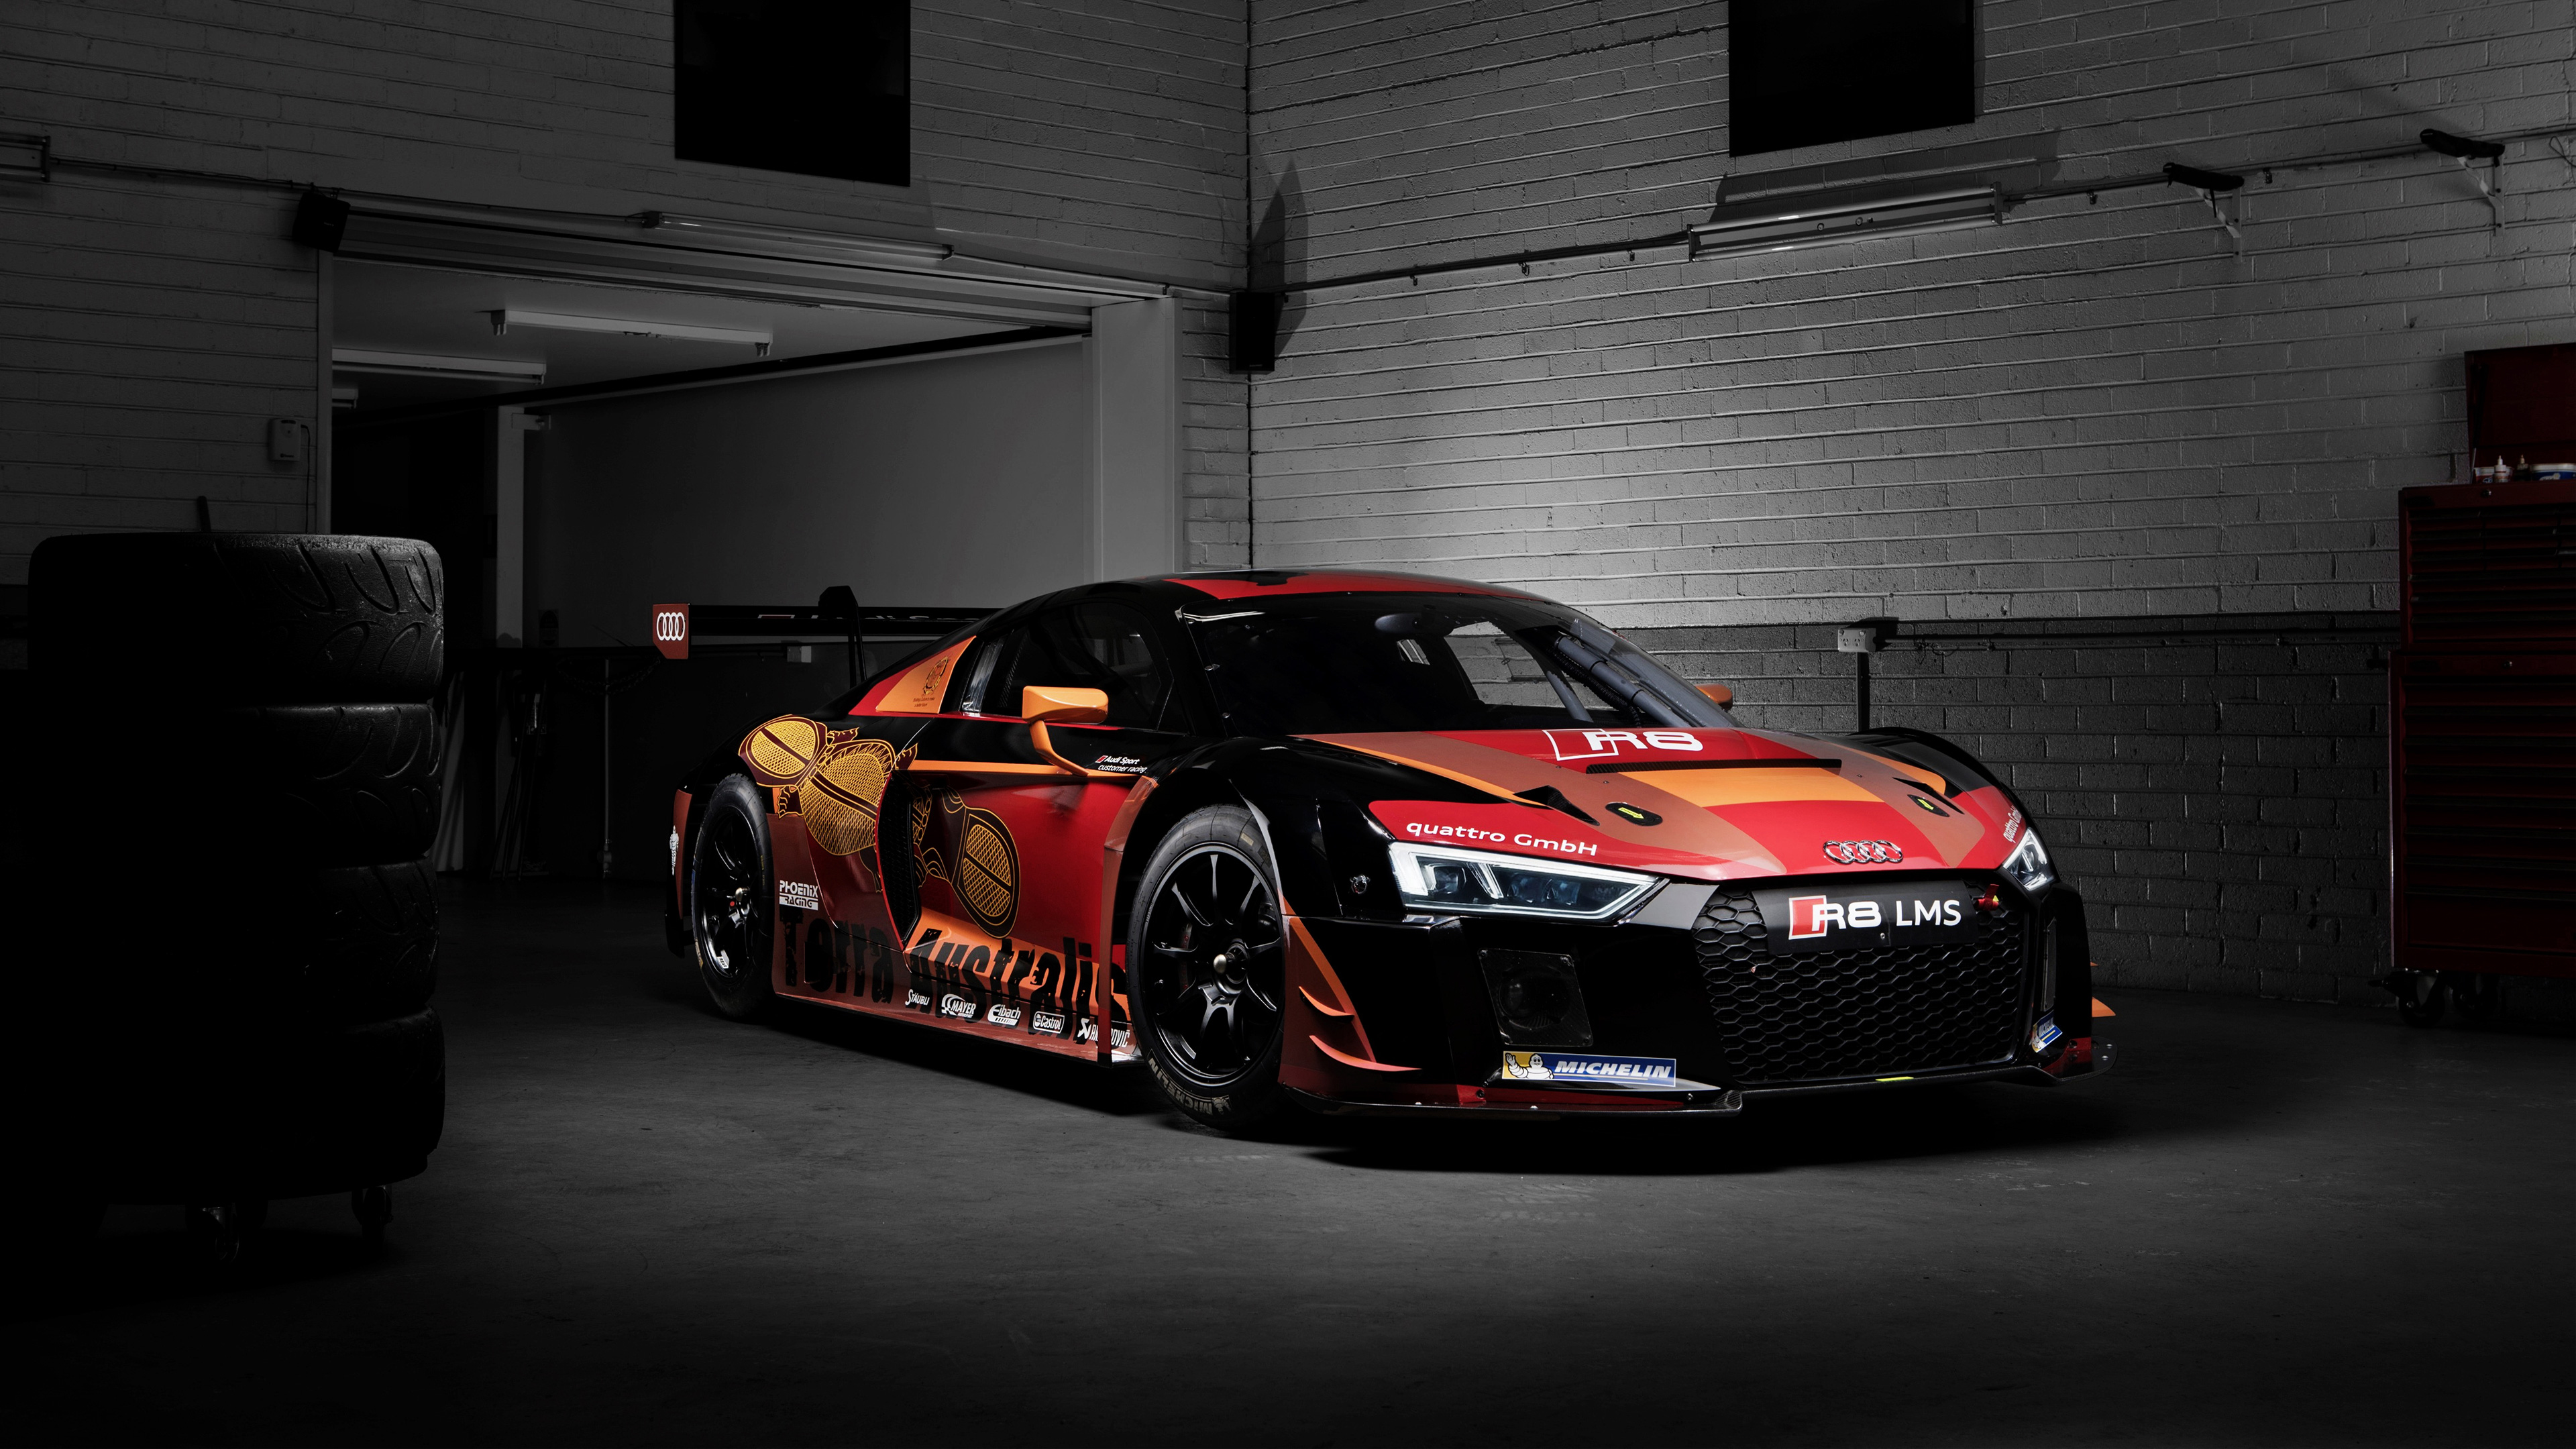 2016 Audi R8 Lms Wallpaper Hd Car Wallpapers Id 6517